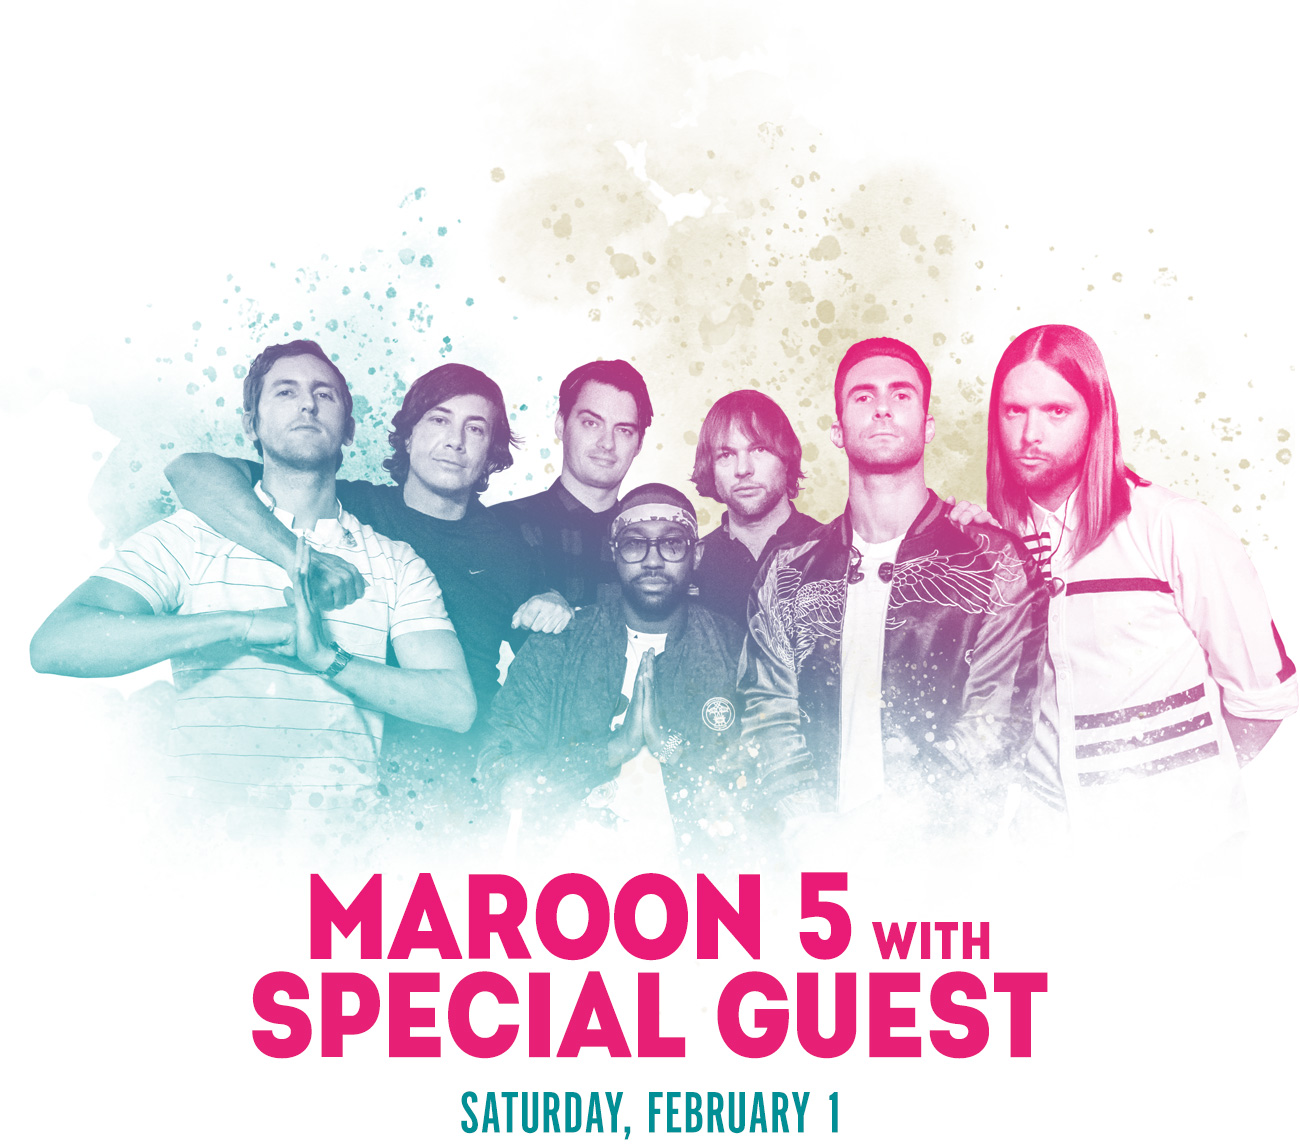 Super Bowl Eve Saturday featuring Maroon 5 with Special Guest